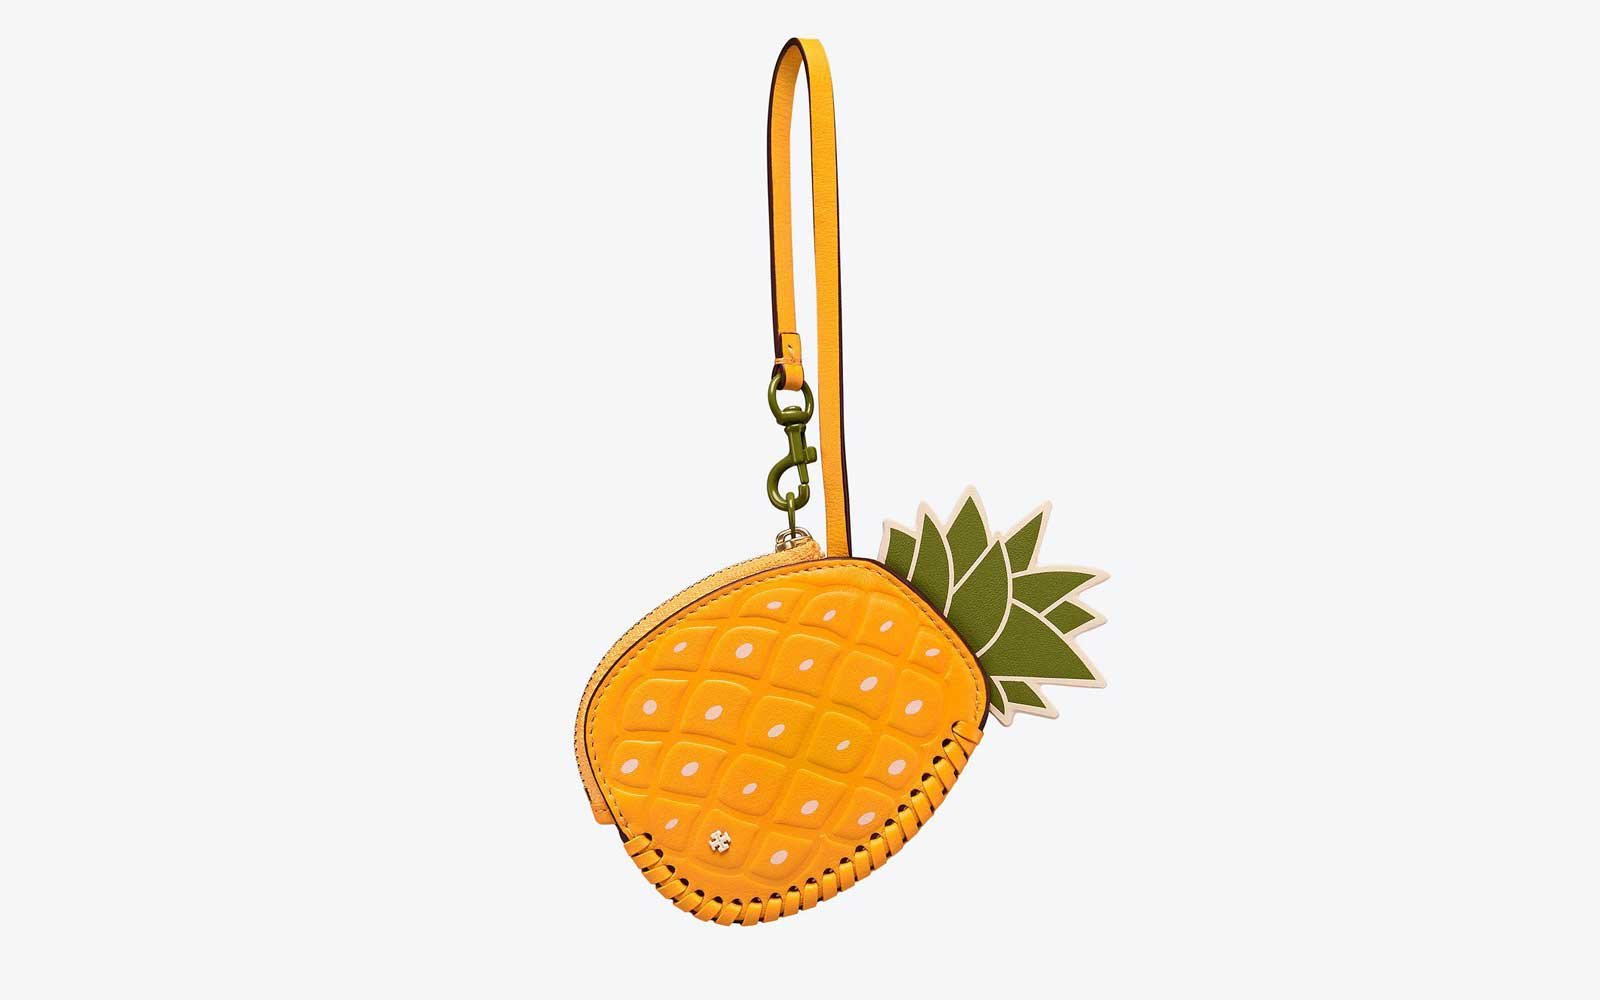 Tory Burch pineapple key ring